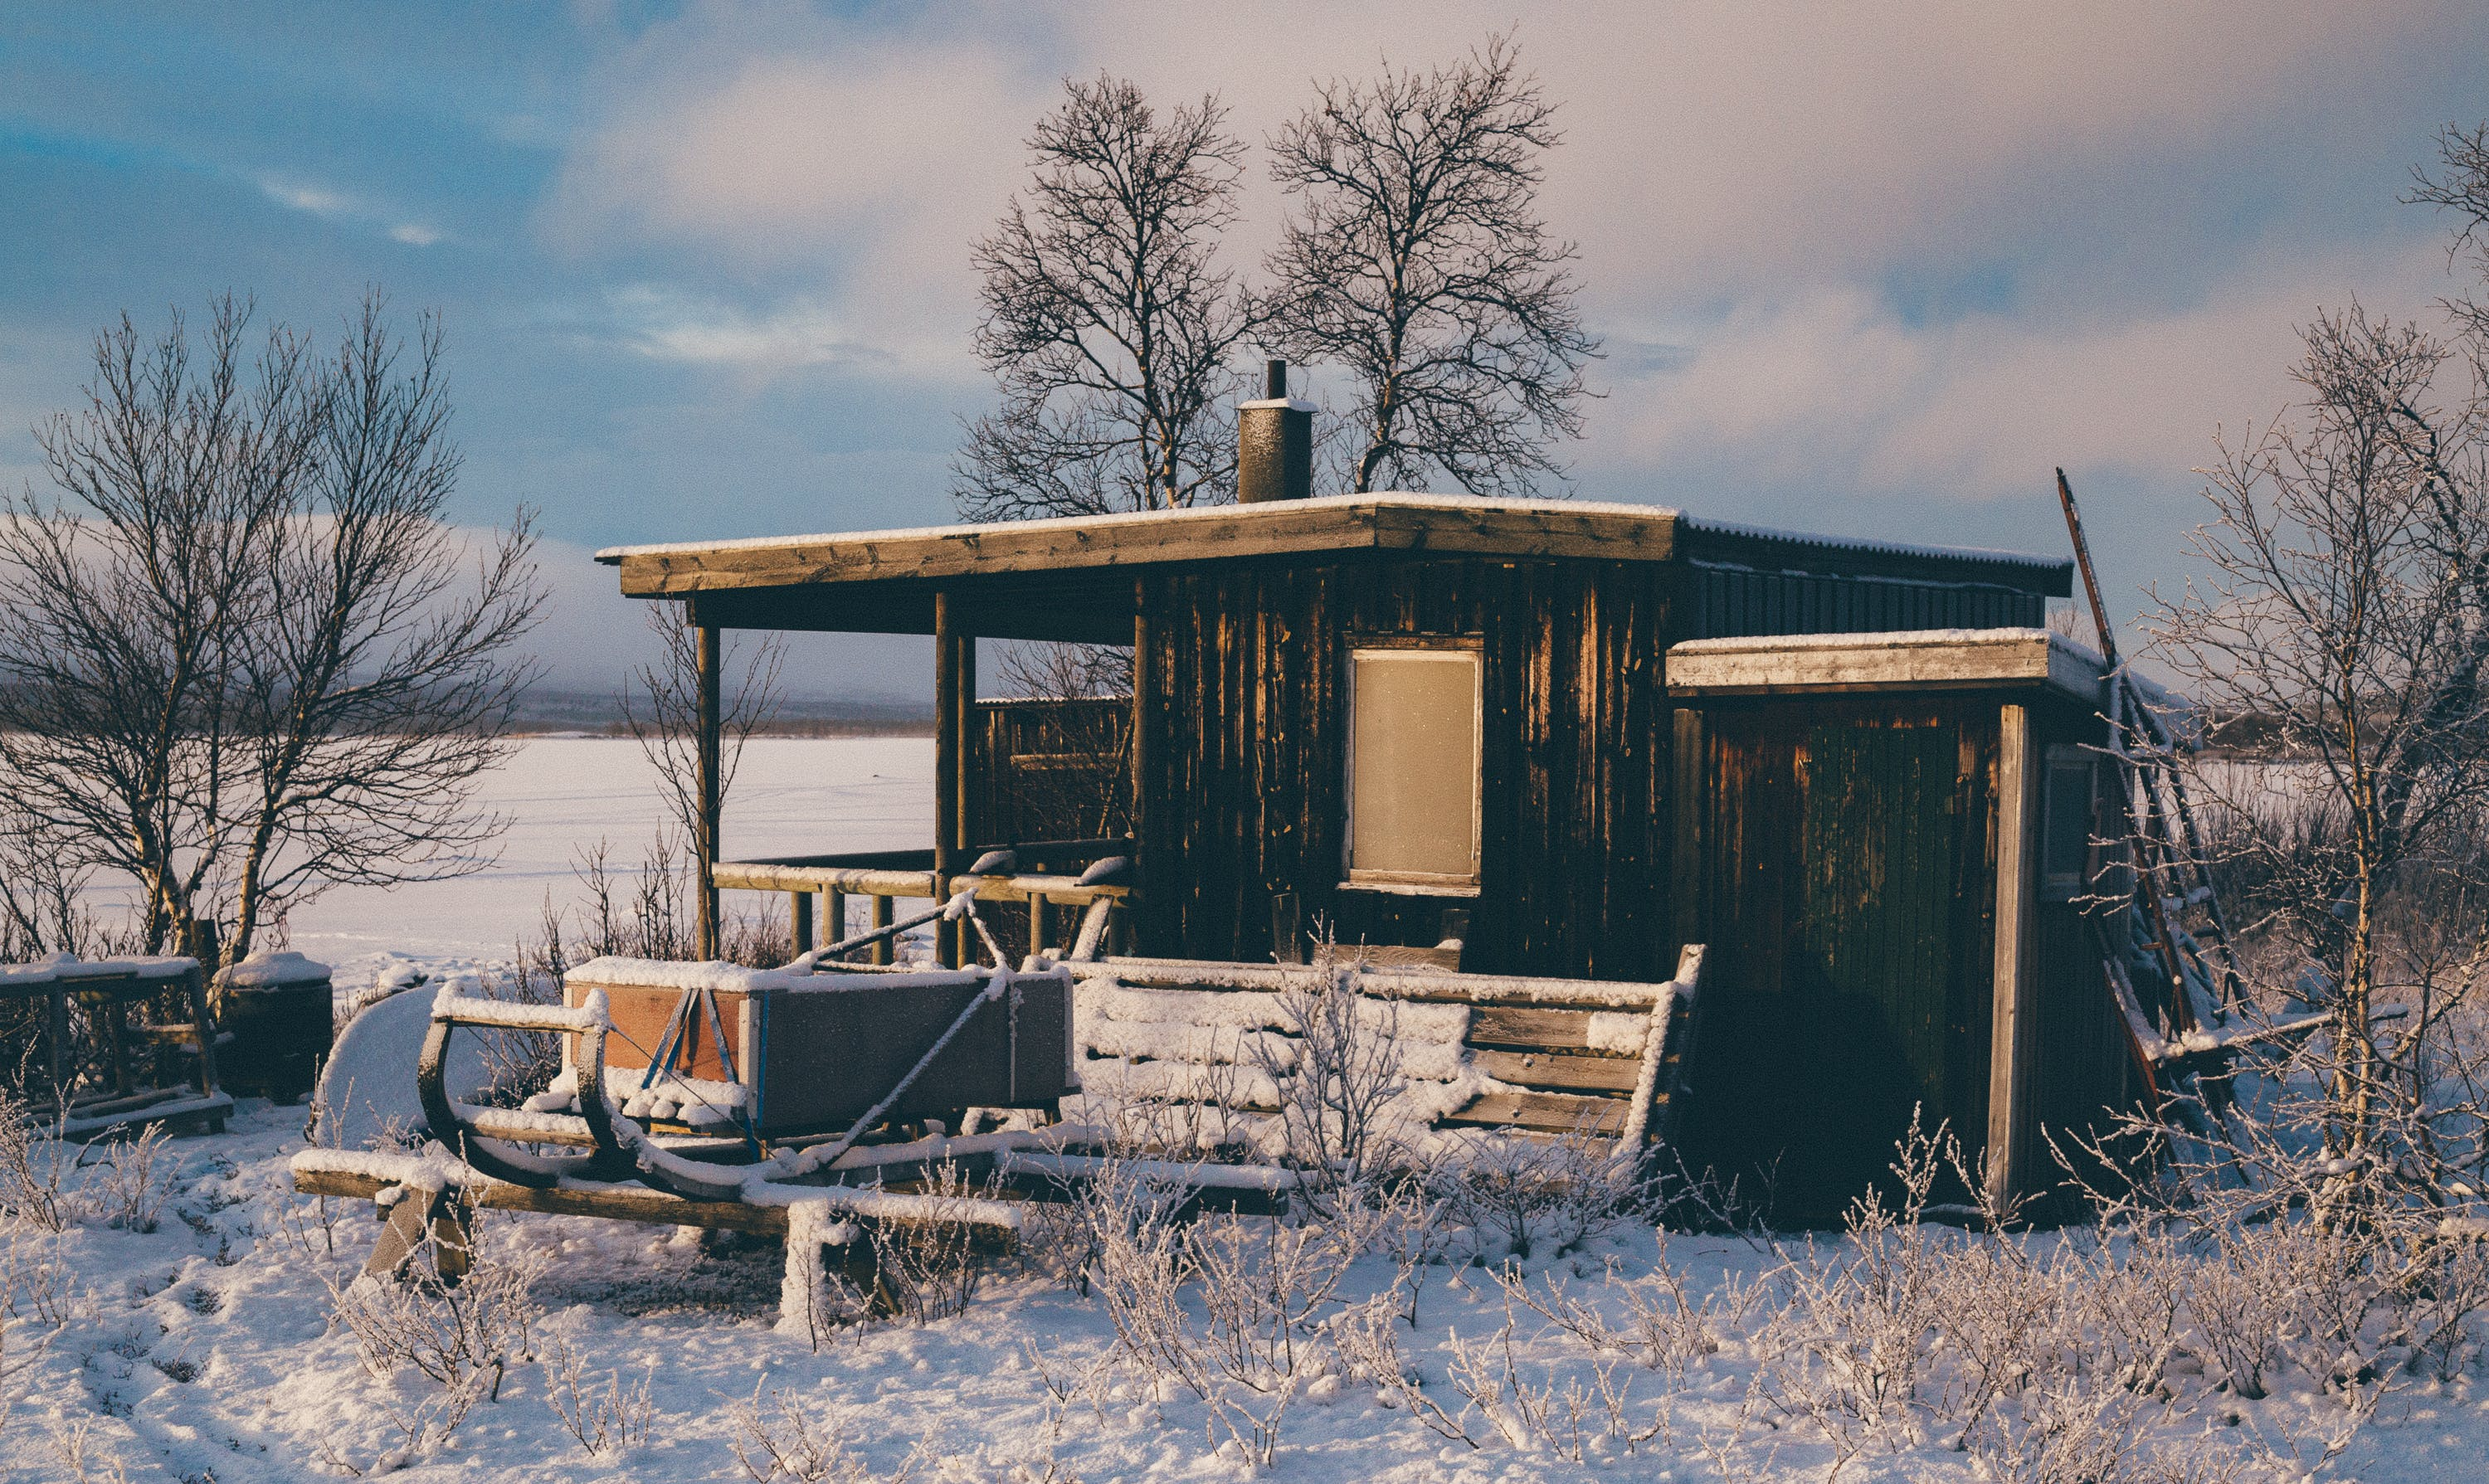 Brown Wooden Barn Surrounded by Snow